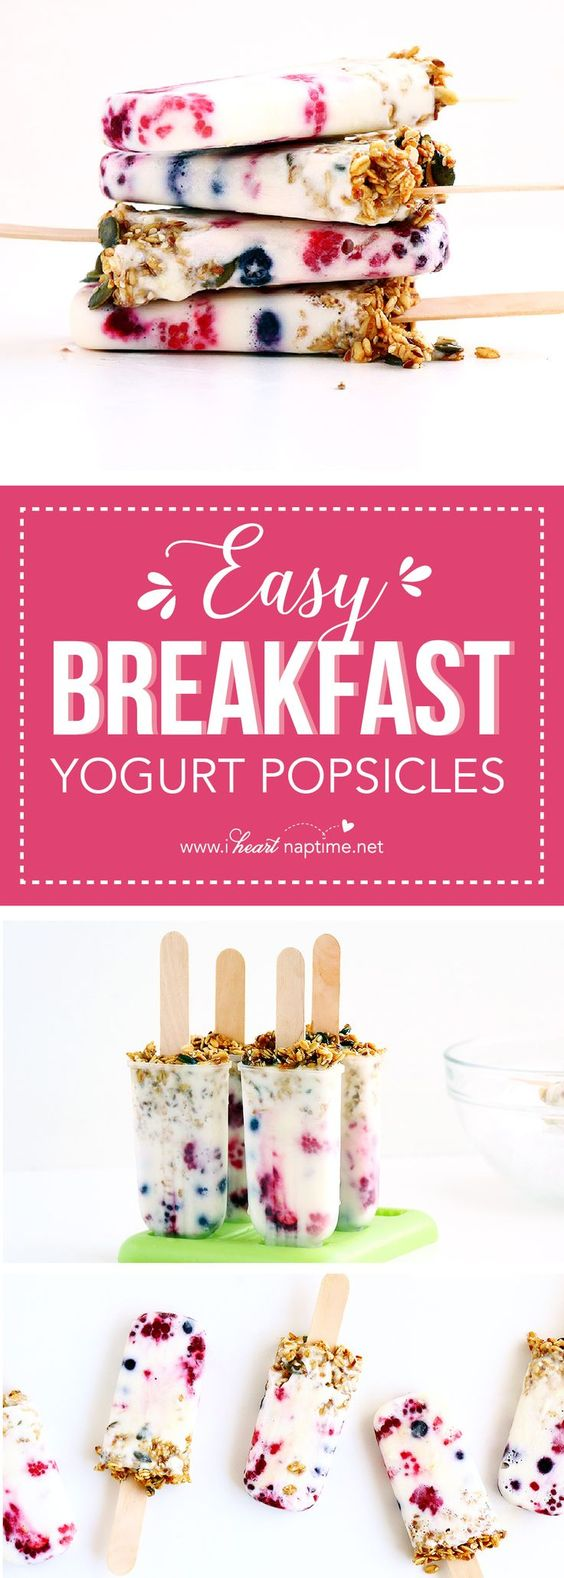 Easy Breakfast Yogurt Popsicles